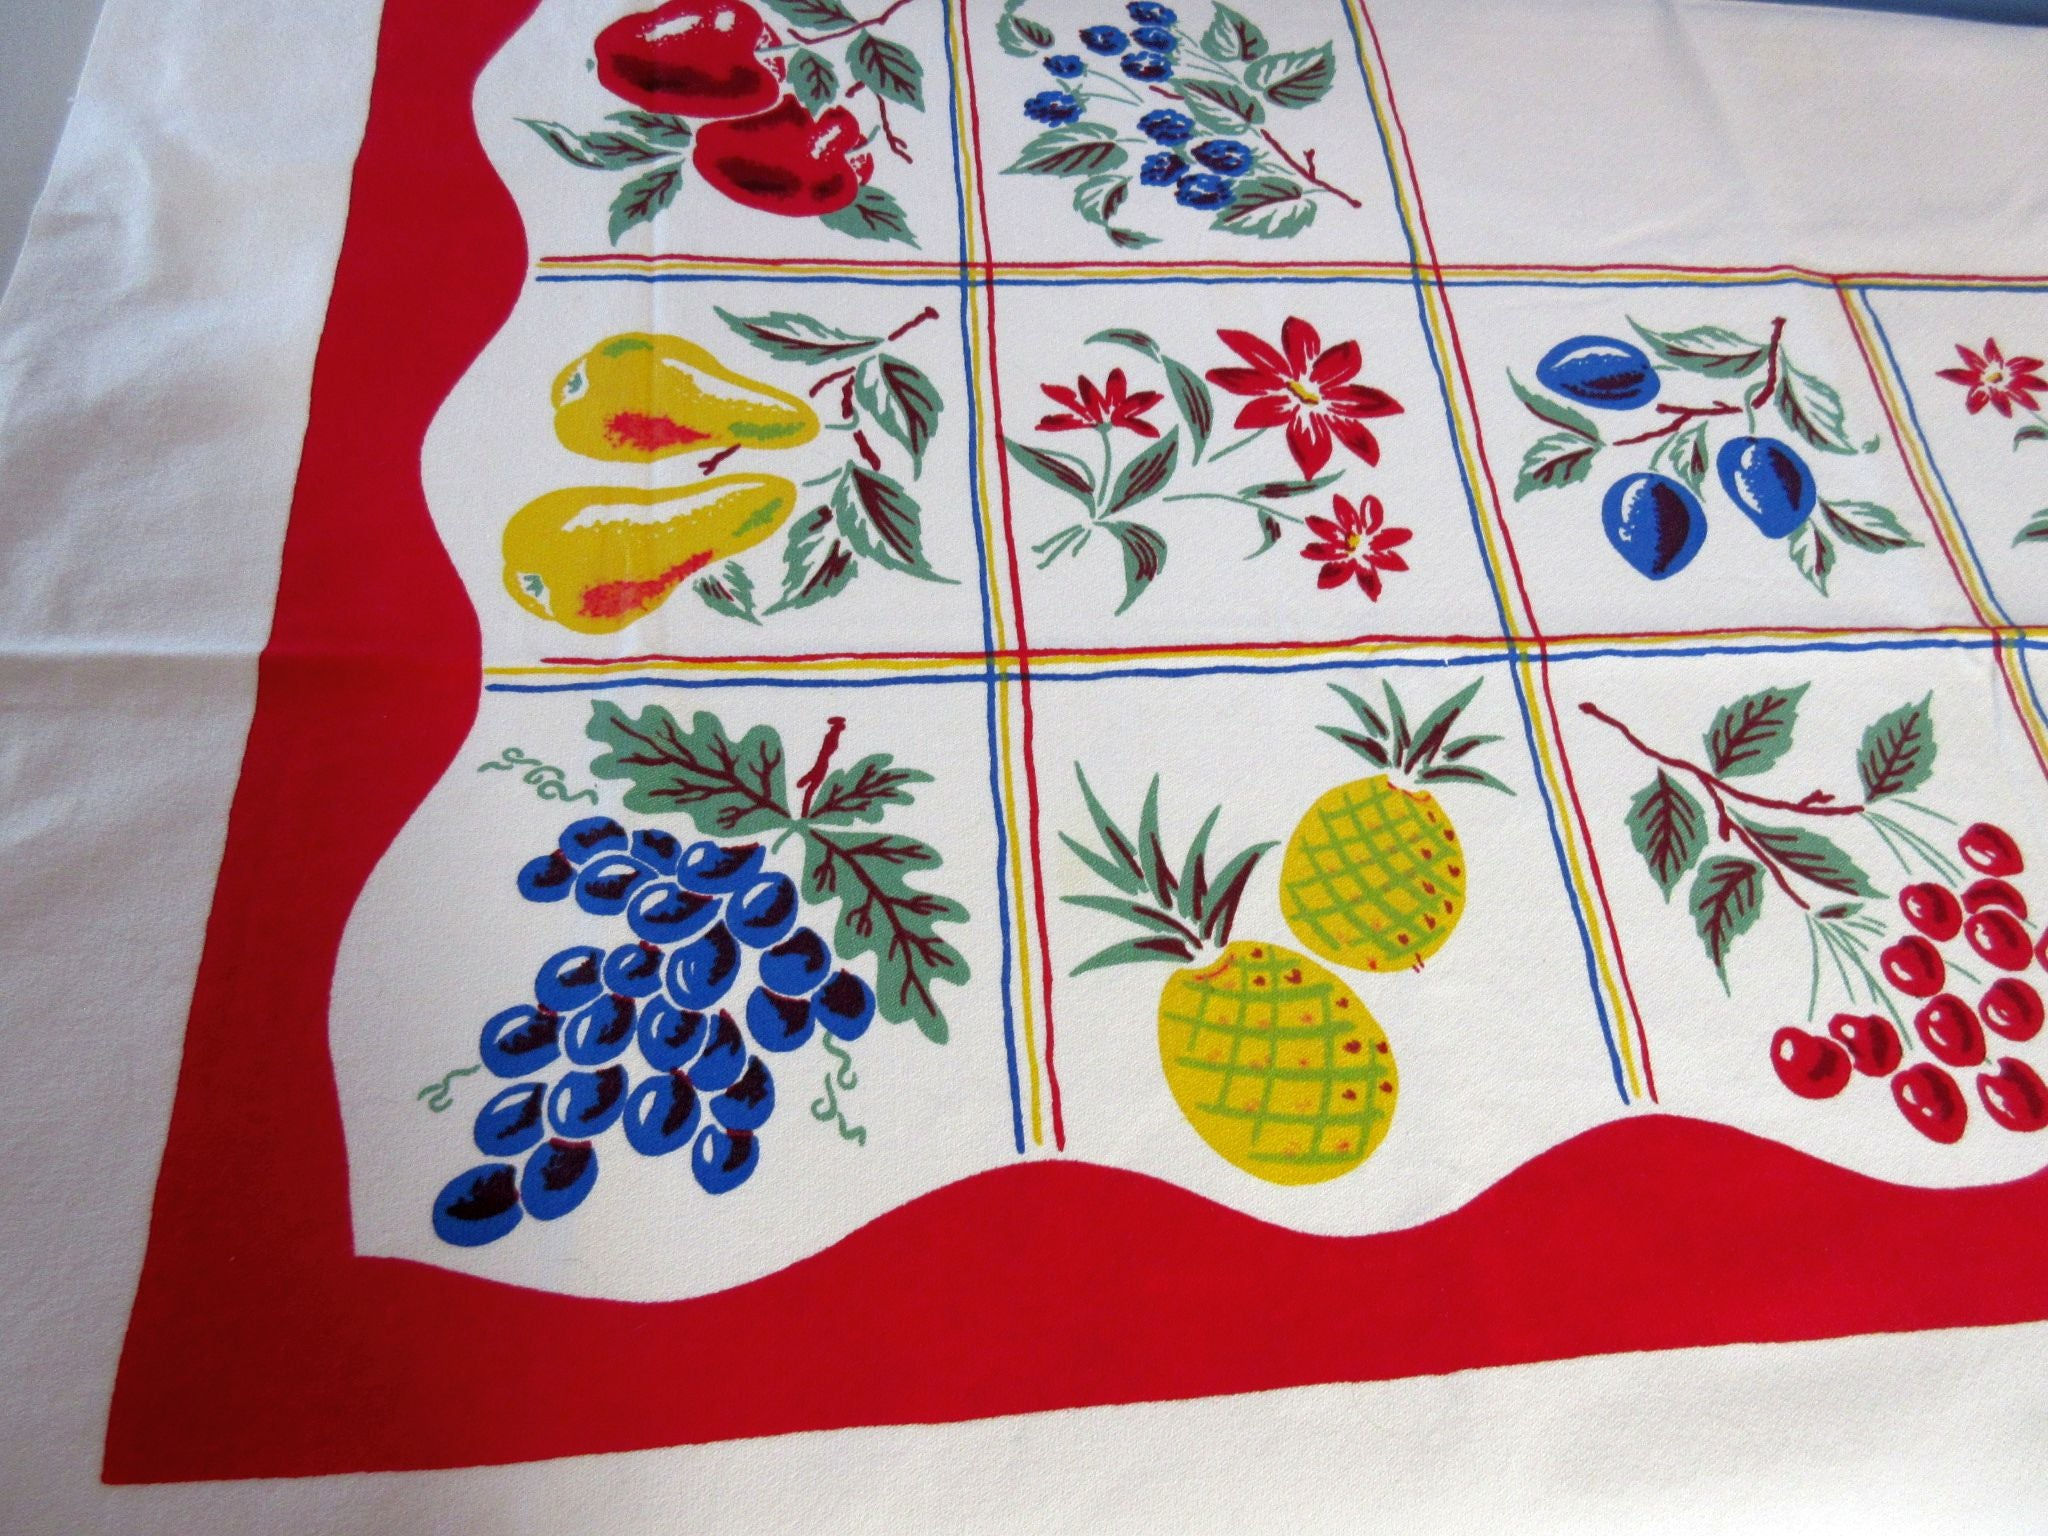 Bright Primary Fruit on Red Simtex Vegetable Vintage Printed Tablecloth (52 X 50)